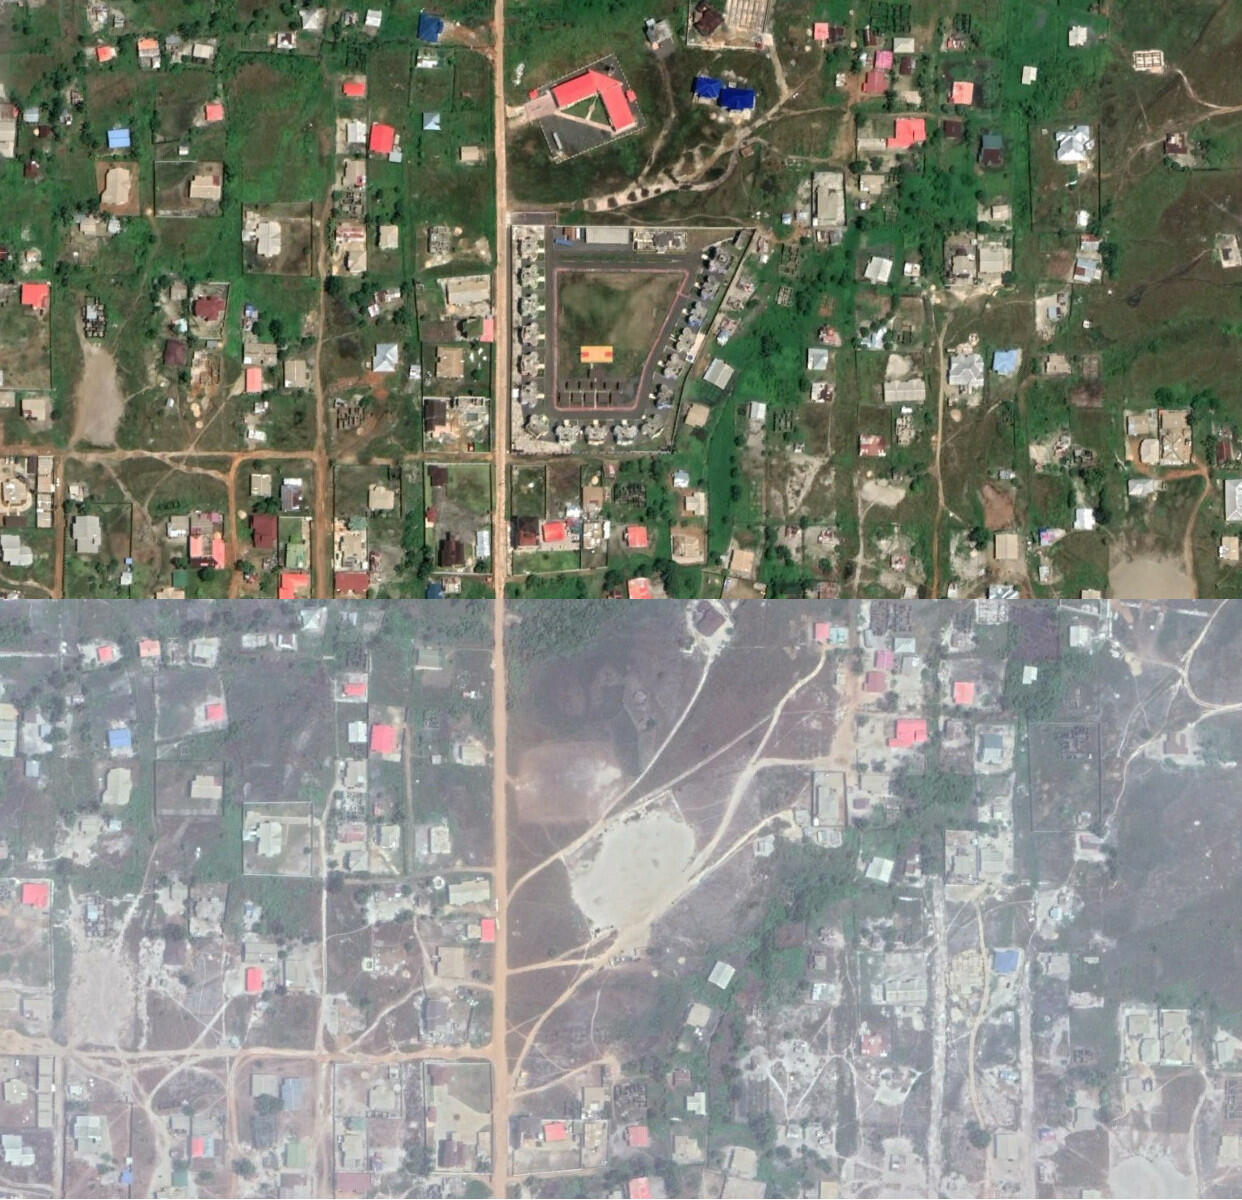 Satellite imagery showing land purportedly owned by Weah having been extensively developed since February 2018 and today.